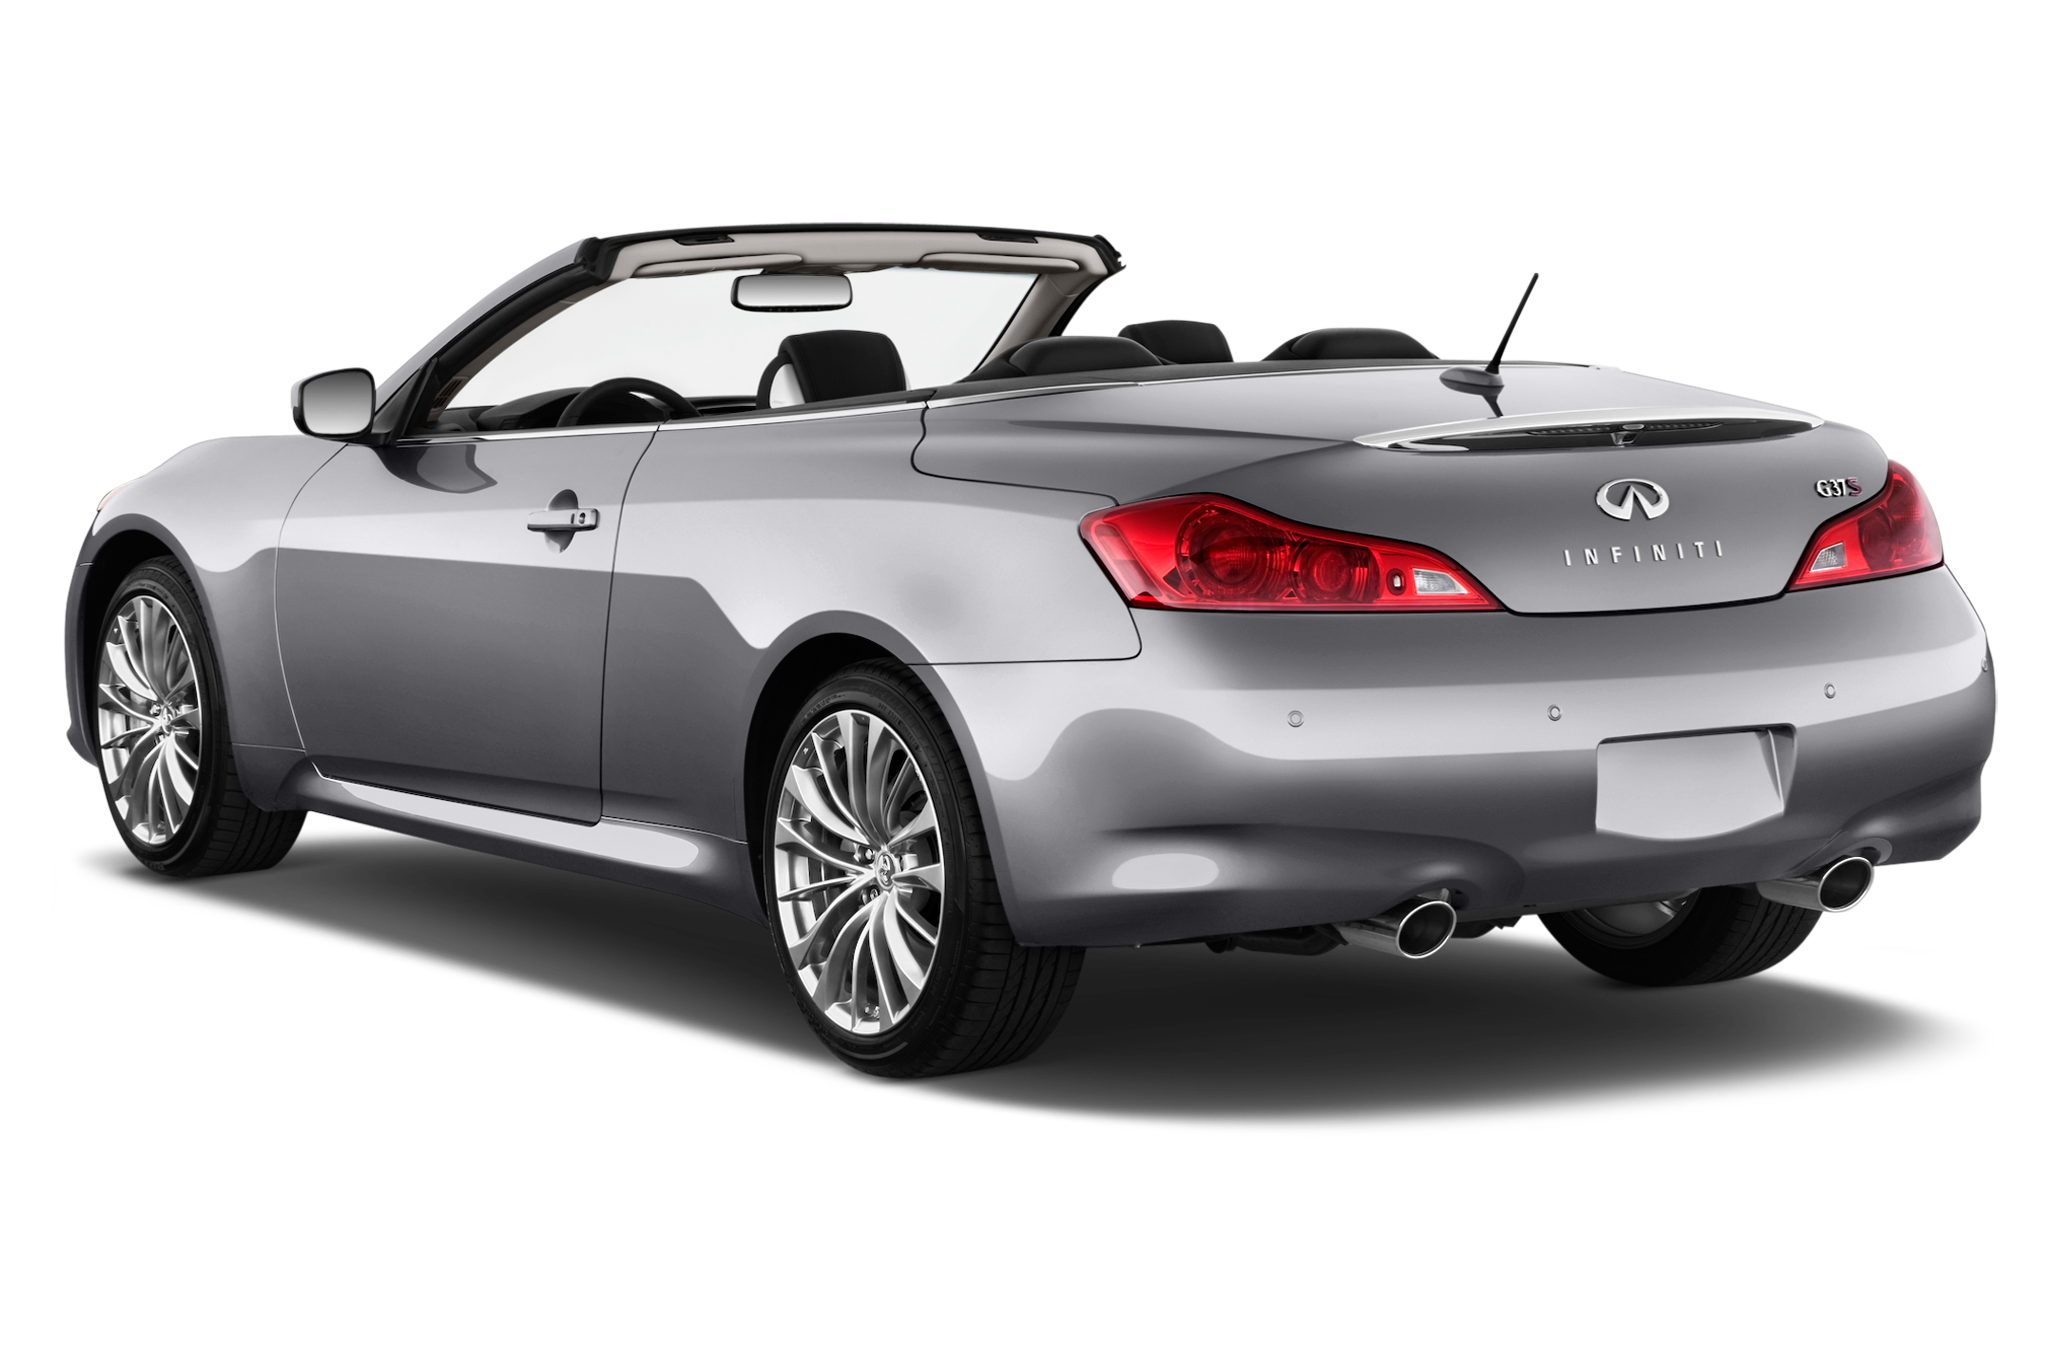 2010 infiniti g37 convertible base angular rear infiniti g37 body diagram wiring diagram